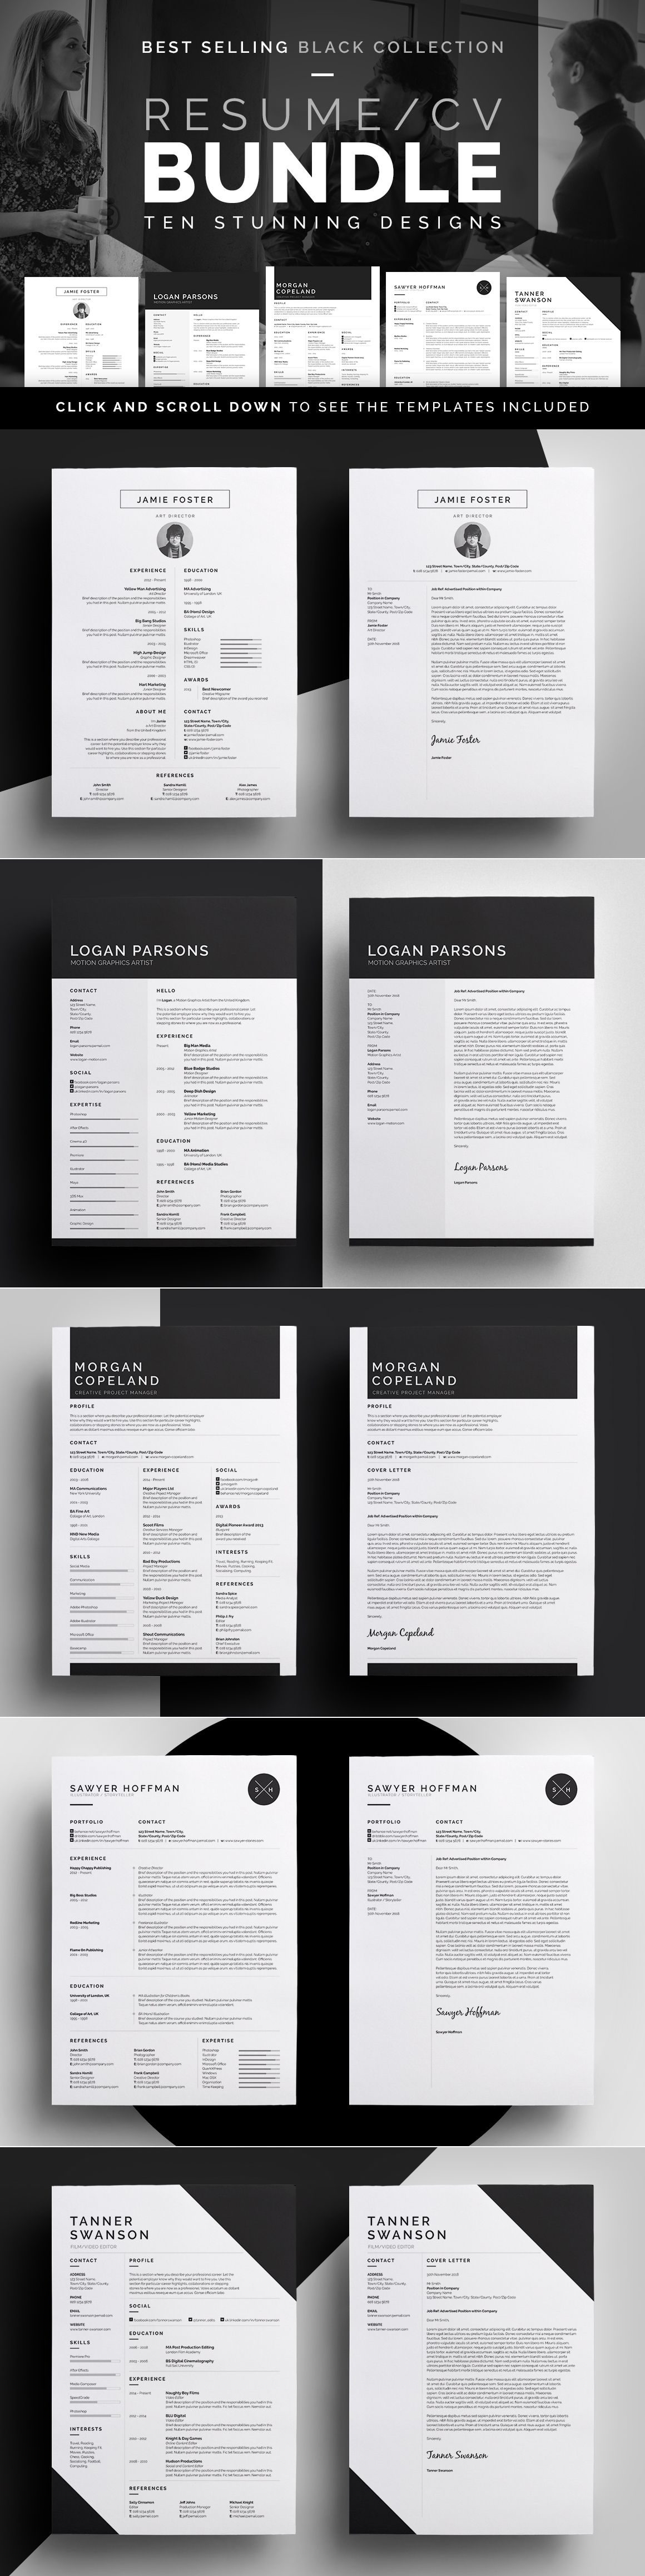 Resume Writing Tips  Choose A Clean Yet Professional Layout